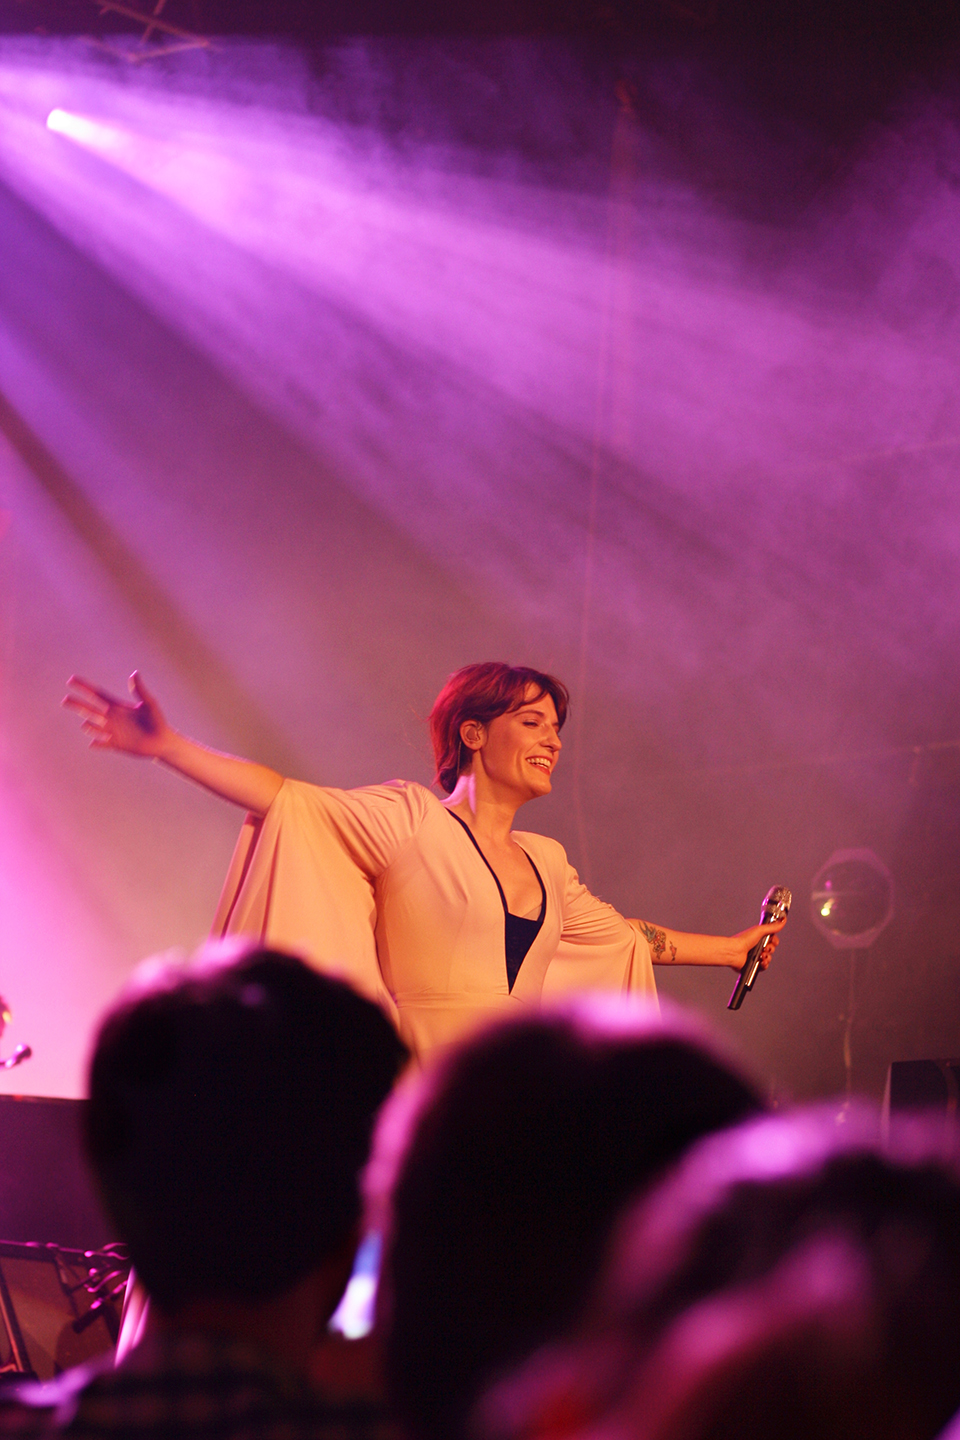 concert-florence-machine-paris-17